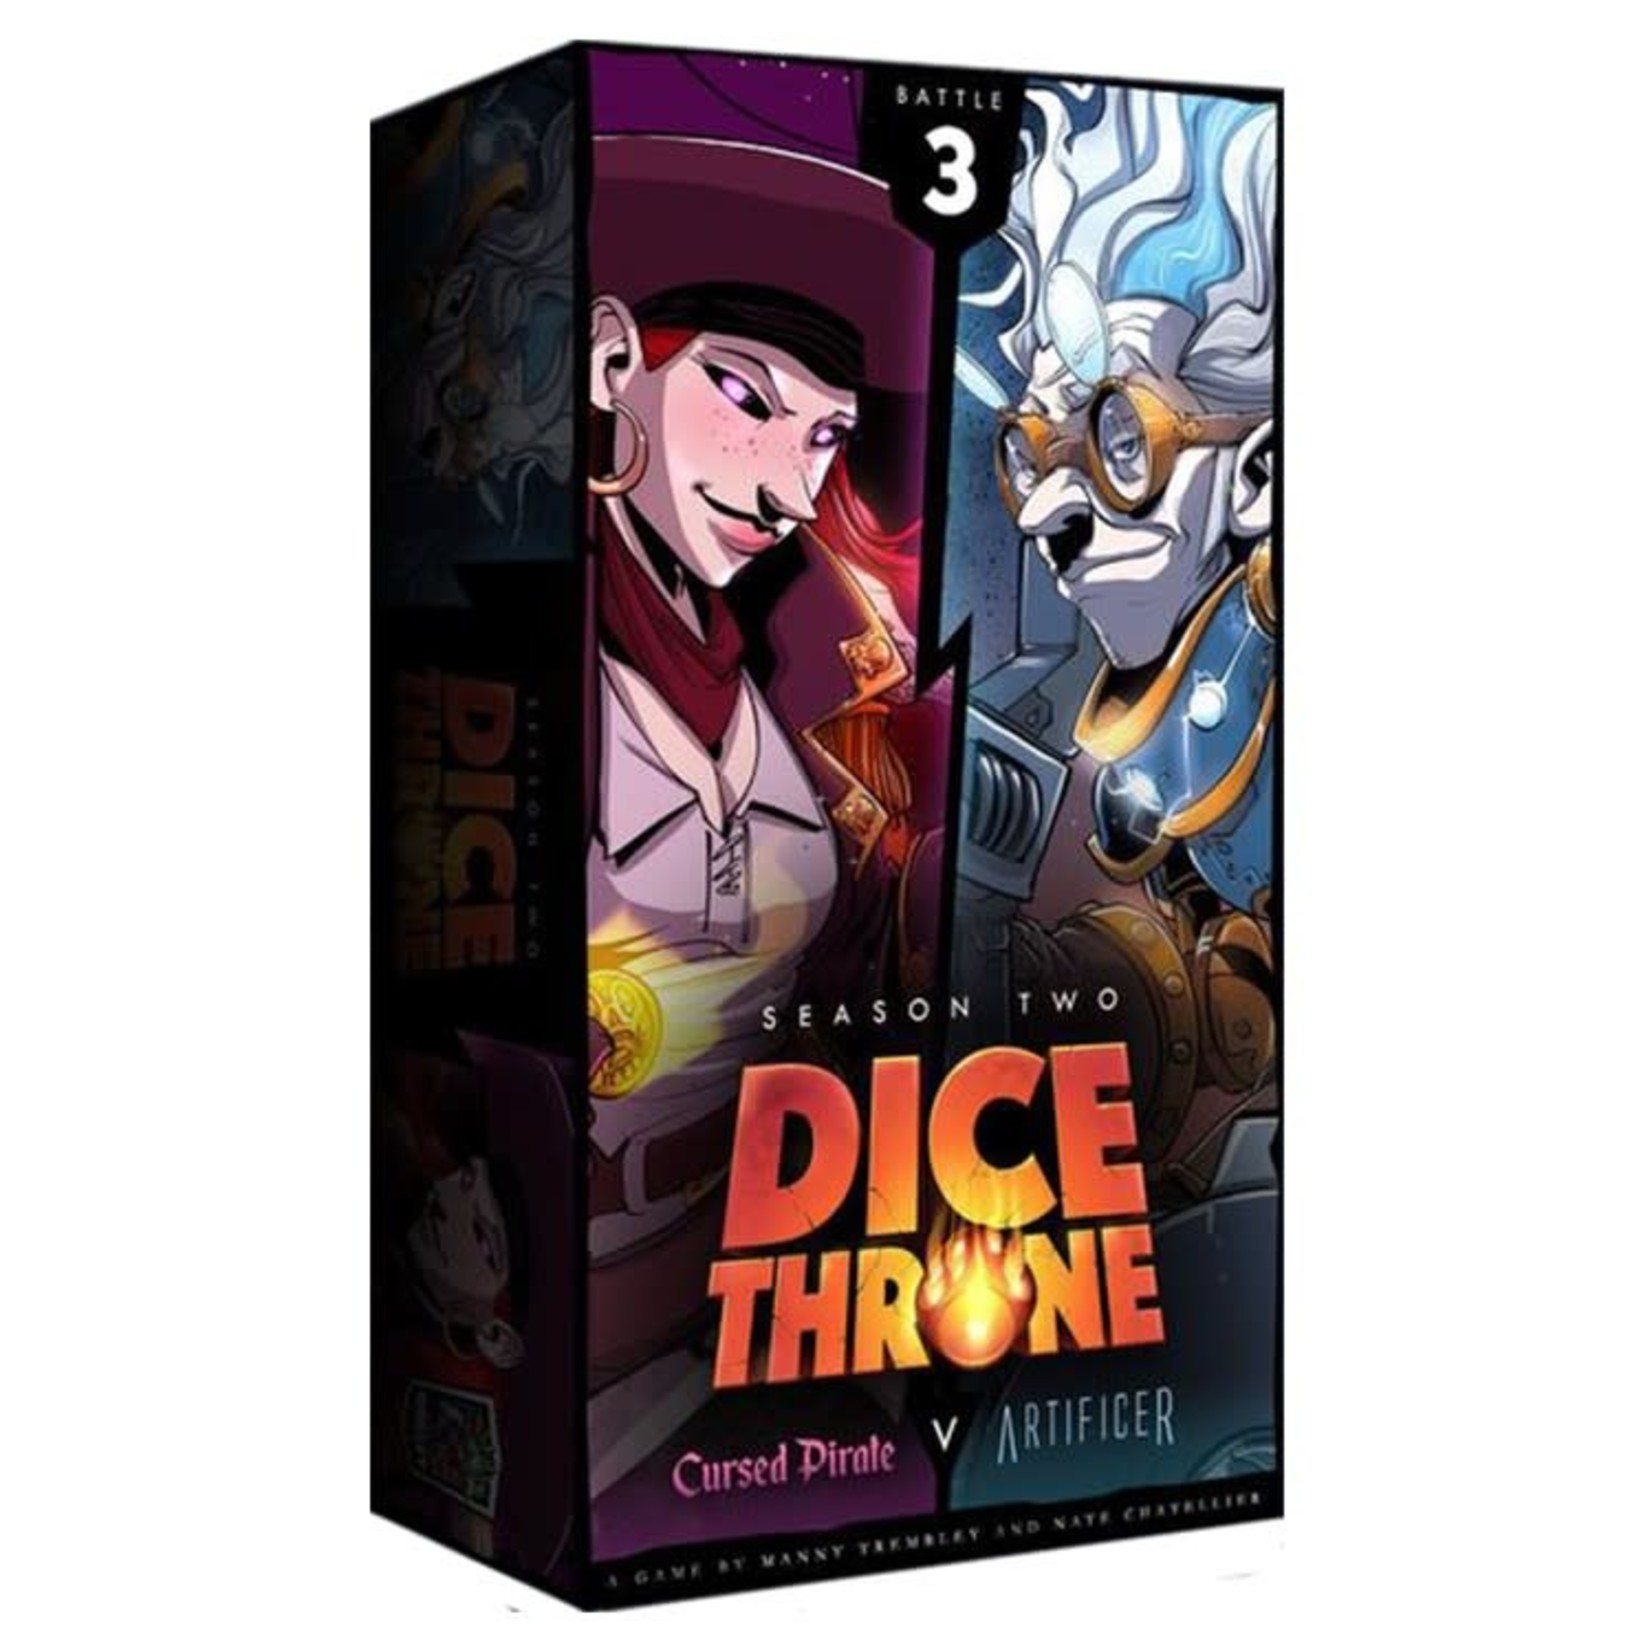 Roxley Games Dice Throne : Season Two - Cursed Pirate vs Artificer